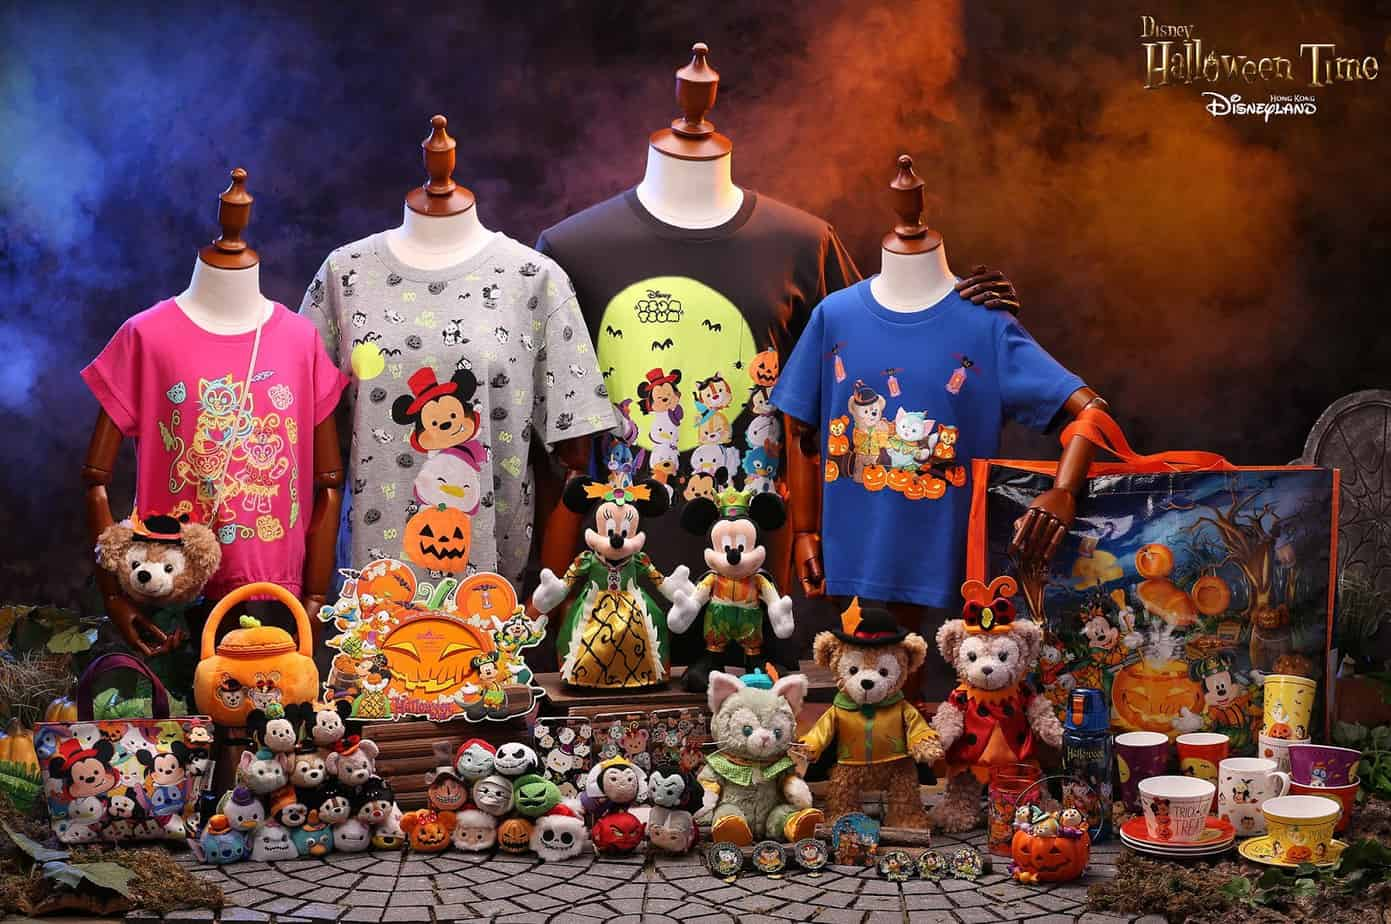 Disneyland Halloween 2019 Merchandise.Halloween Time 2016 At Hong Kong Disneyland